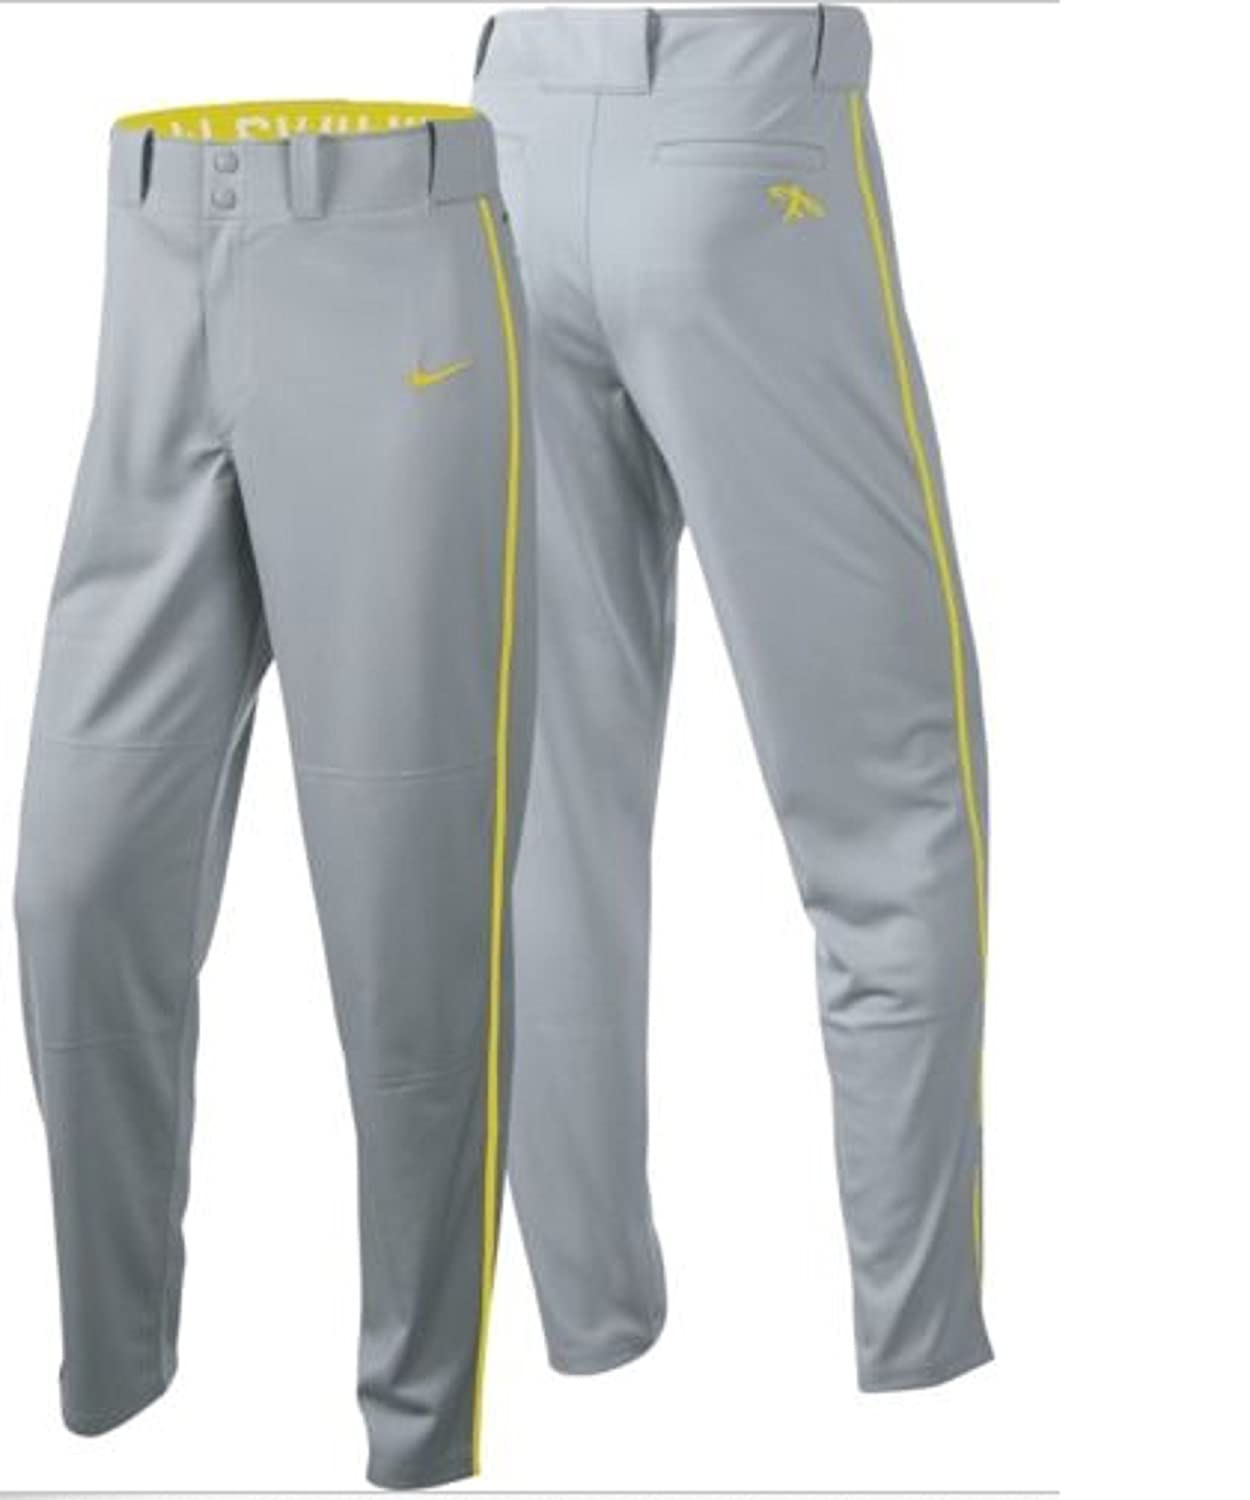 cf9c970d81d0 Amazon.com   Nike Boys Swingman Dri-FIT Piped Baseball Pants (Grey Yellow